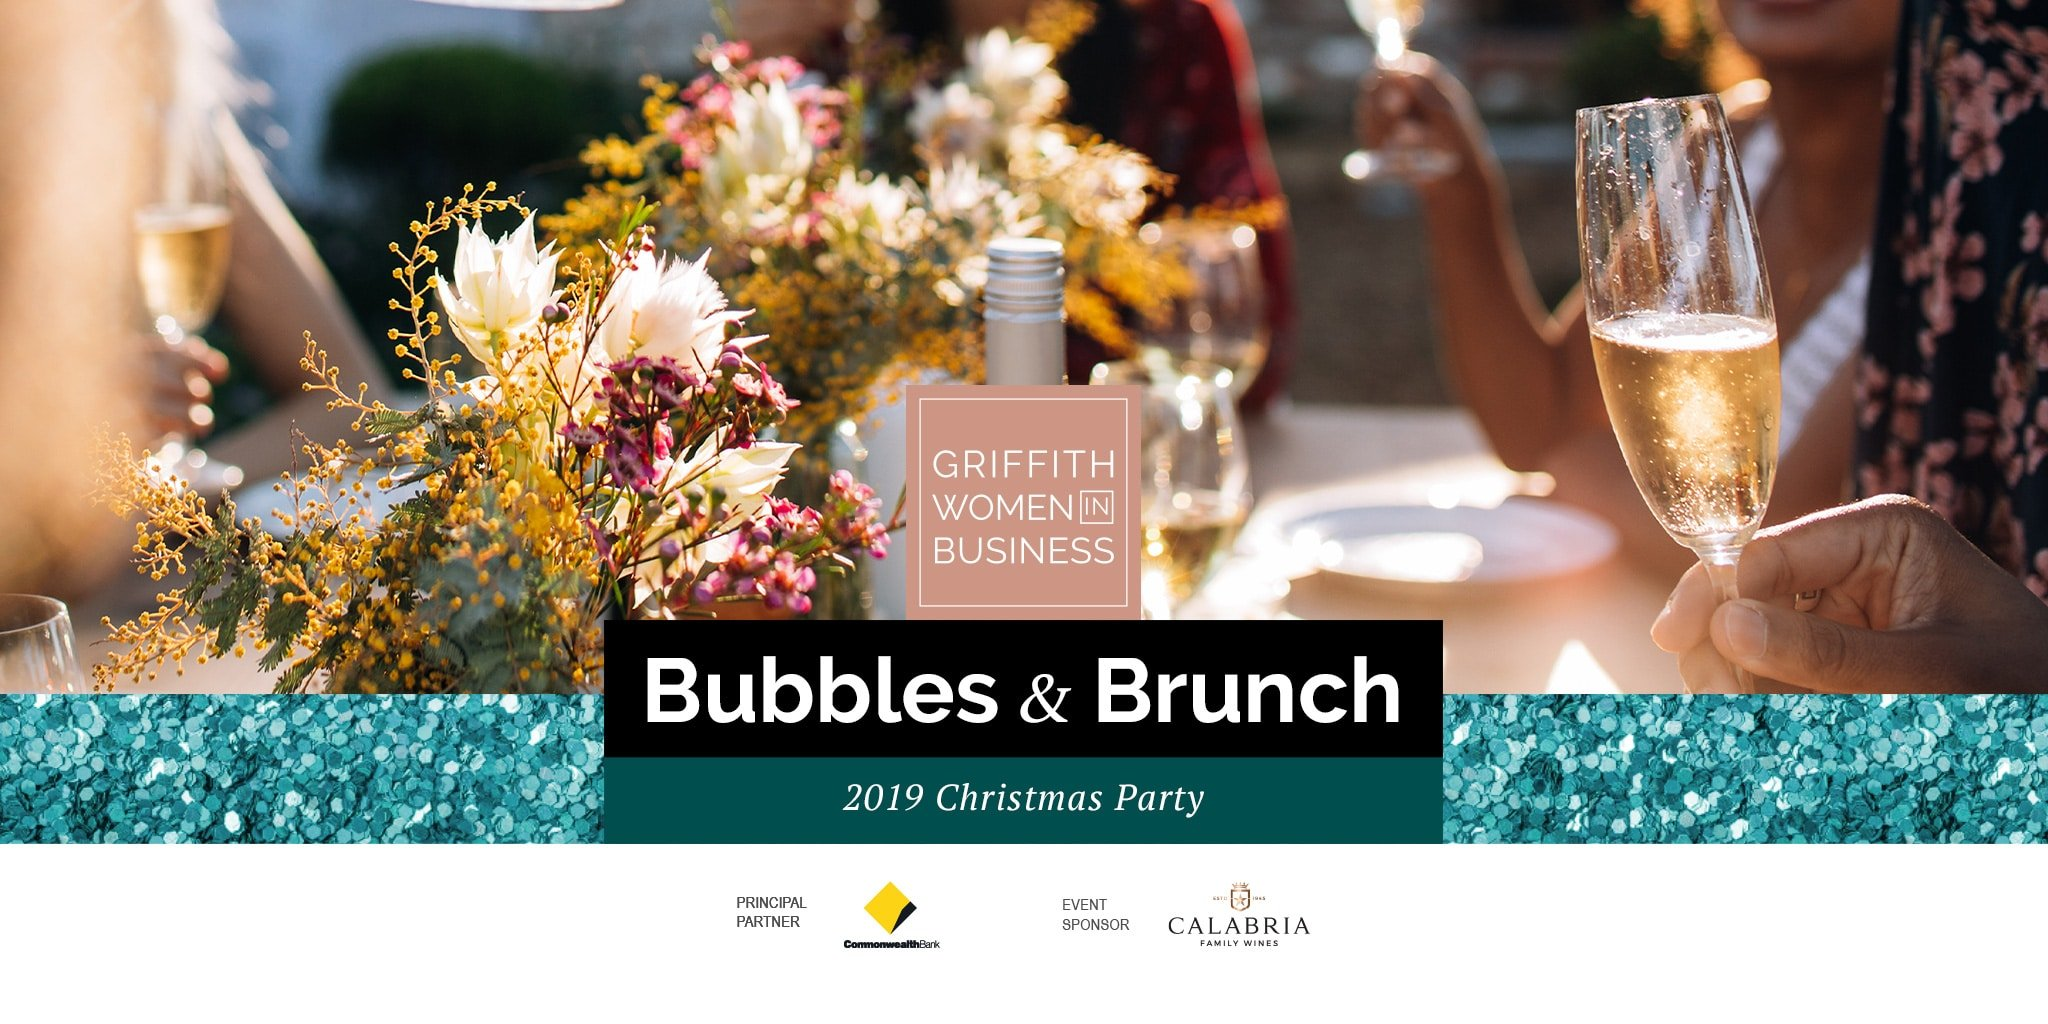 GWIB Bubbles & Bunch 2019 Christmas Party |